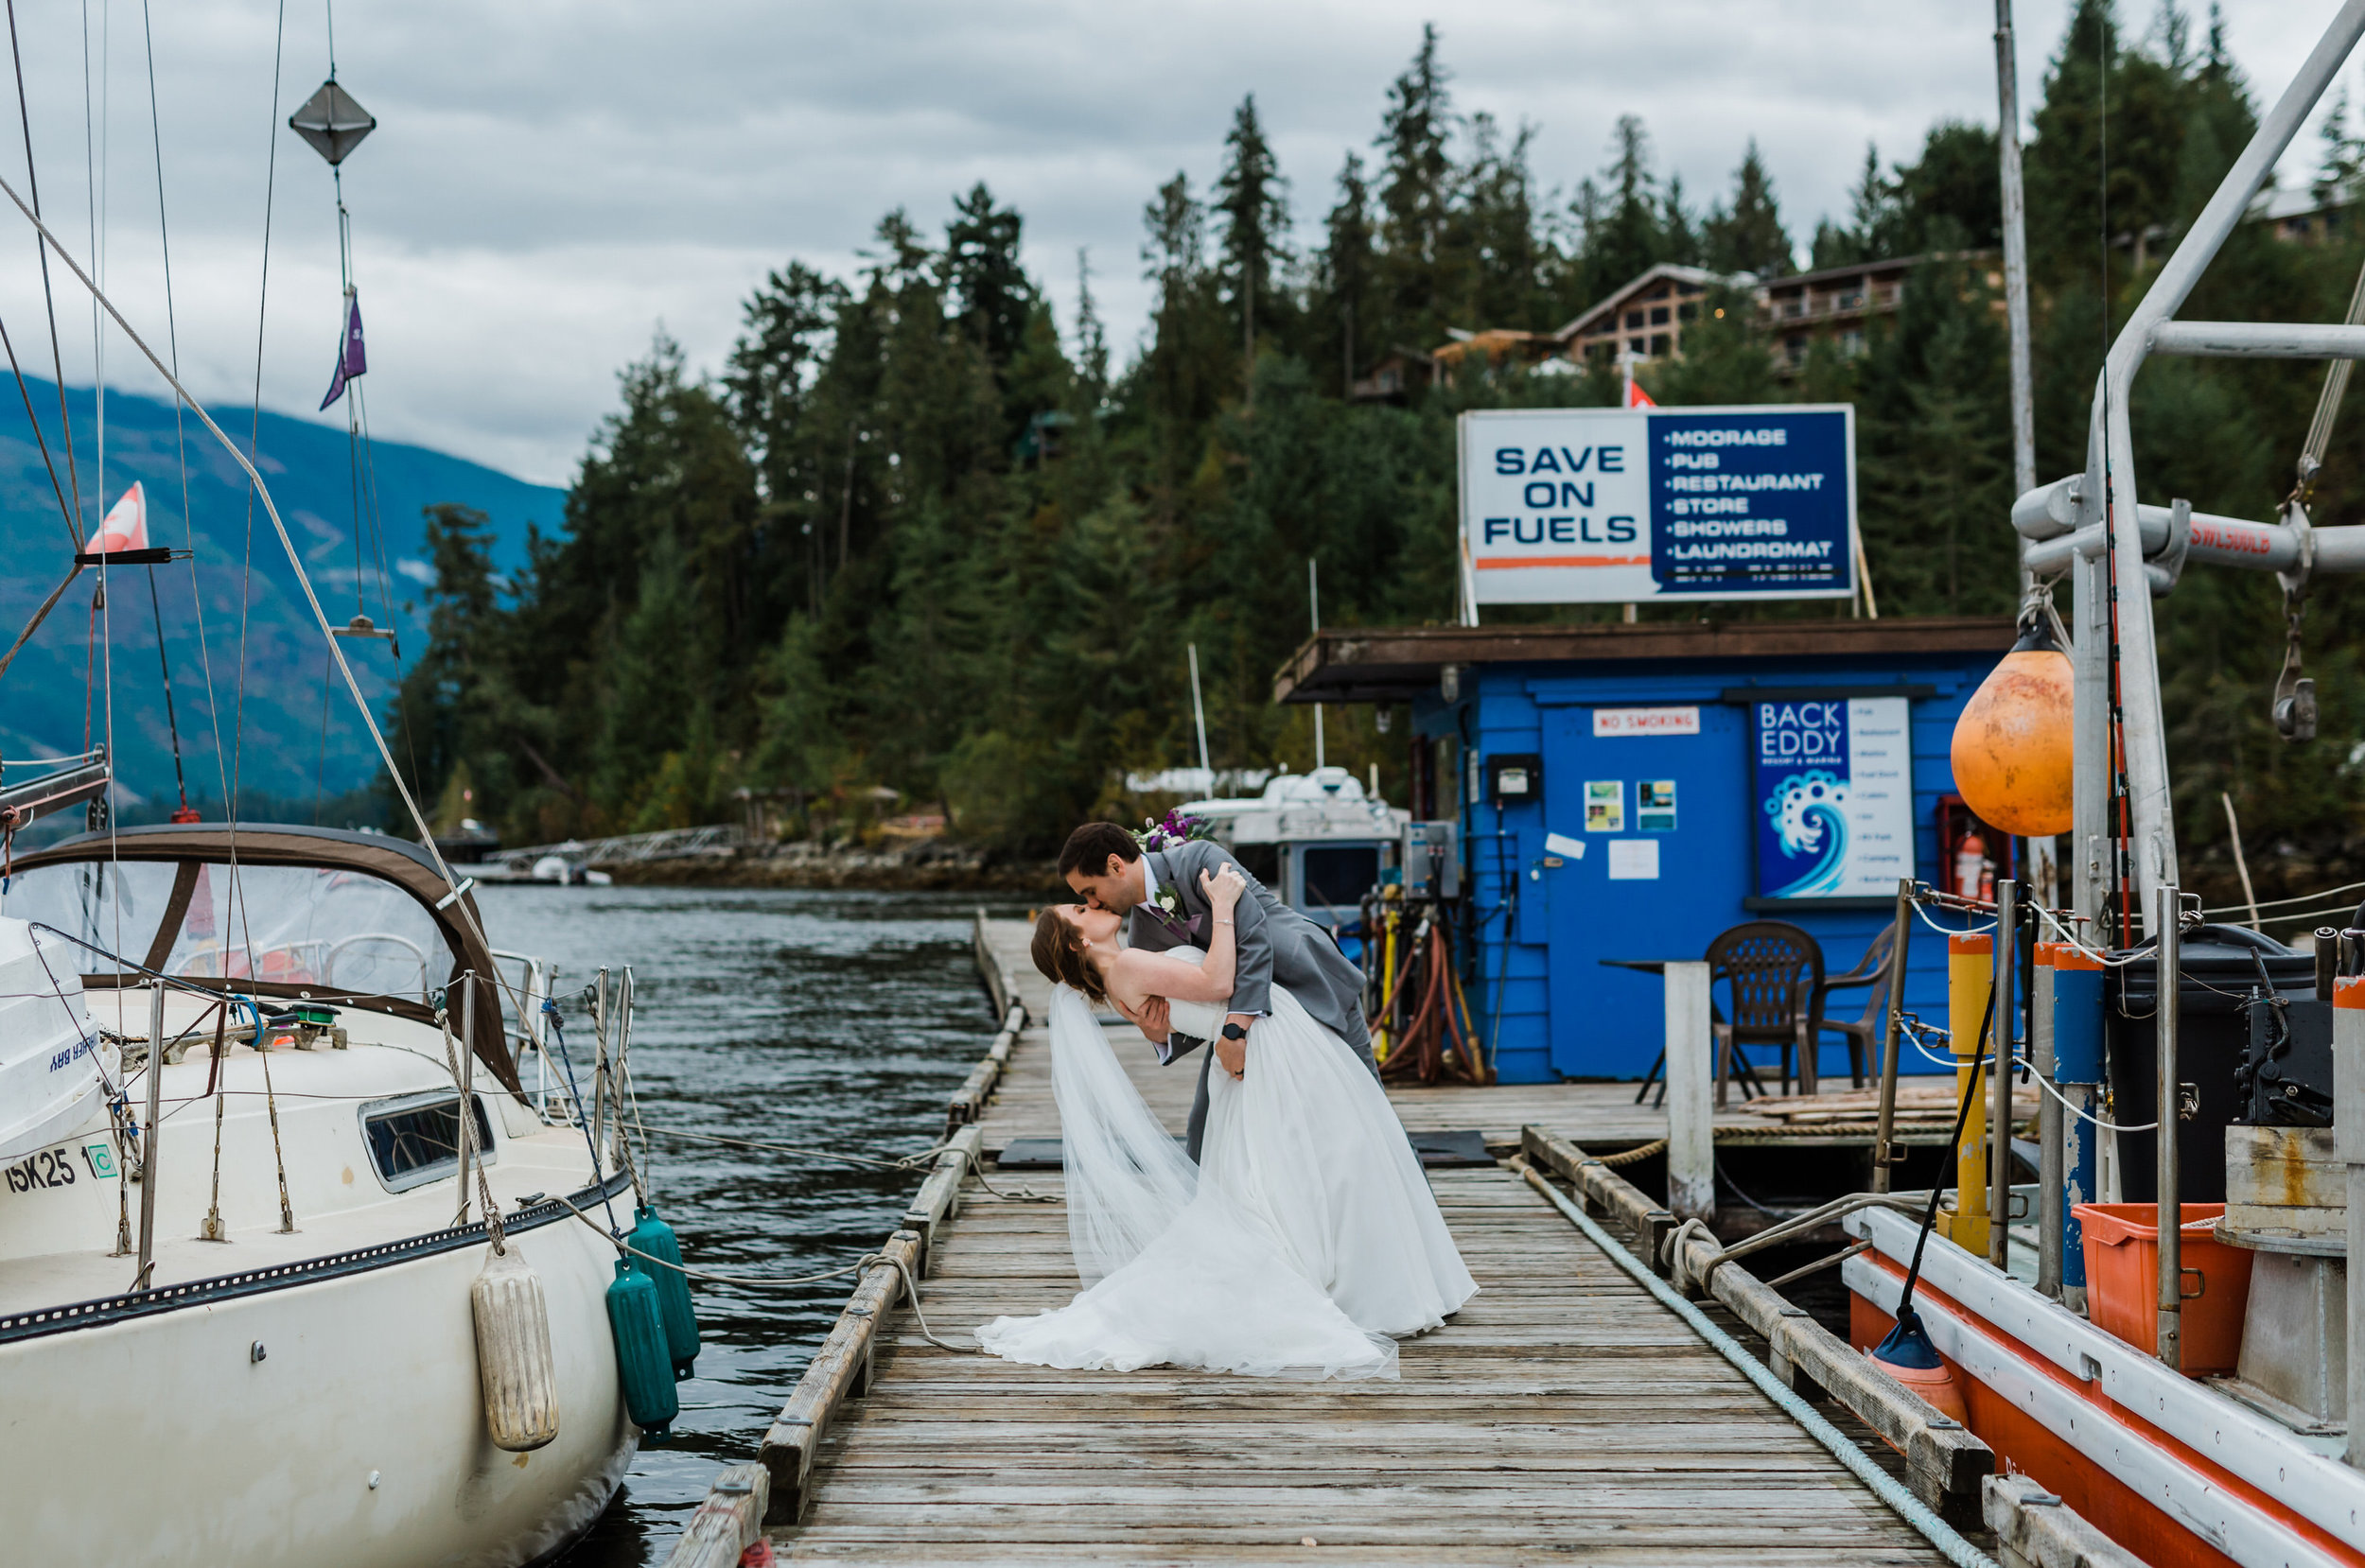 West Coast Wilderness Lodge Wedding Photos - Vancouver Wedding Photographer & Videographer - Sunshine Coast Wedding Photos - Sunshine Coast Wedding Photographer - Jennifer Picard Photography - IMG_6720.jpg